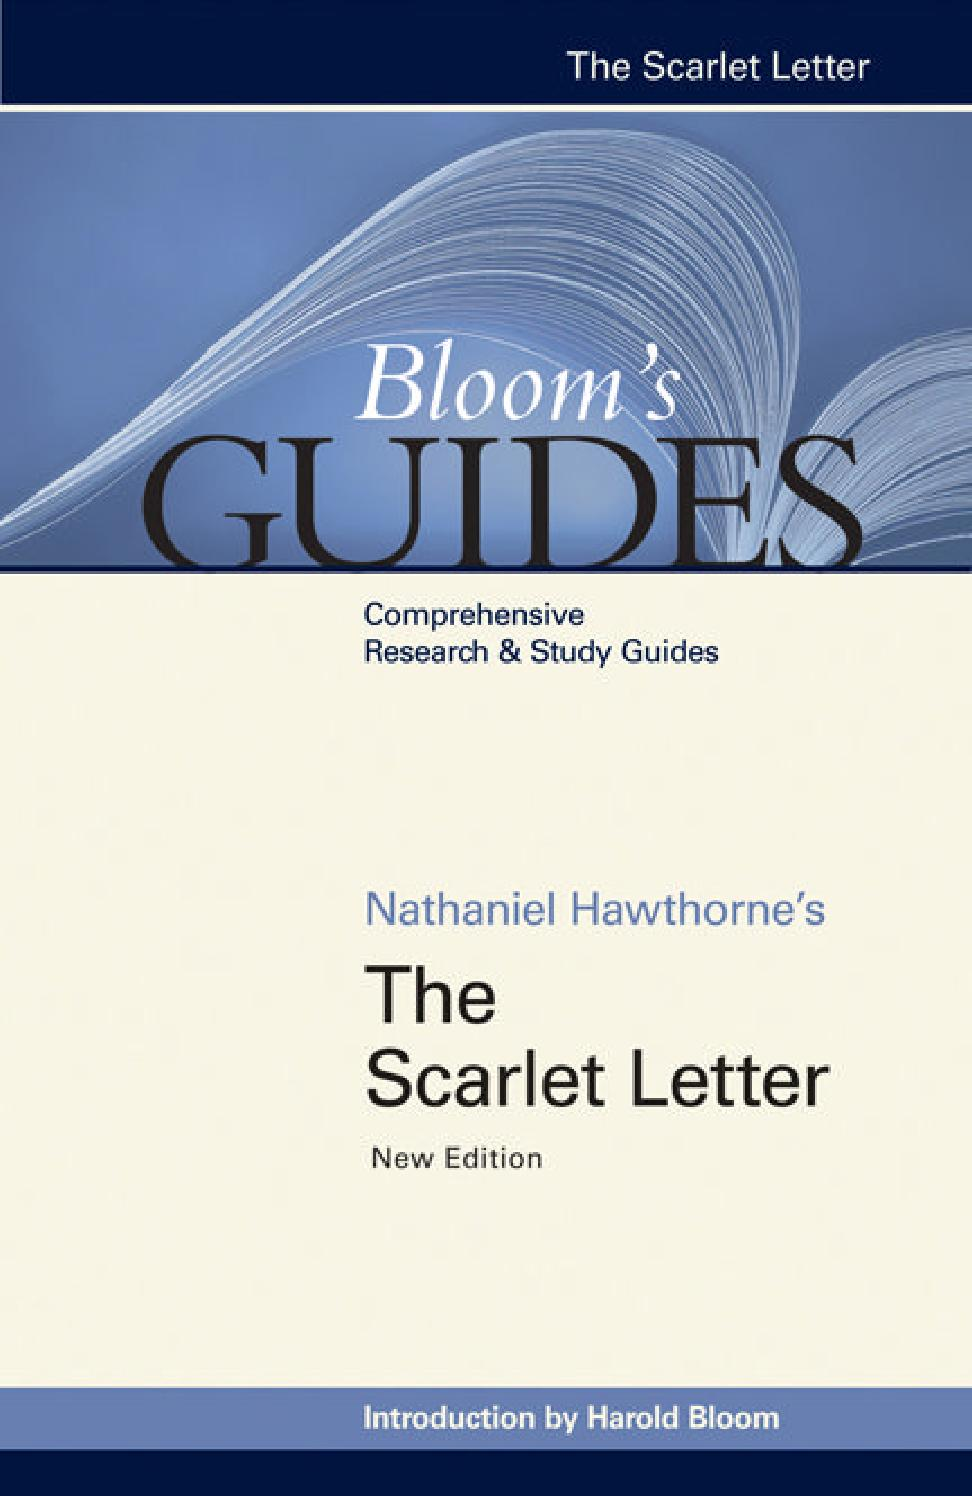 harold bloom ed nathaniel hawthorne s the scarlet letter bloom harold bloom ed nathaniel hawthorne s the scarlet letter bloom s guides 2010 by zoldyeck issuu